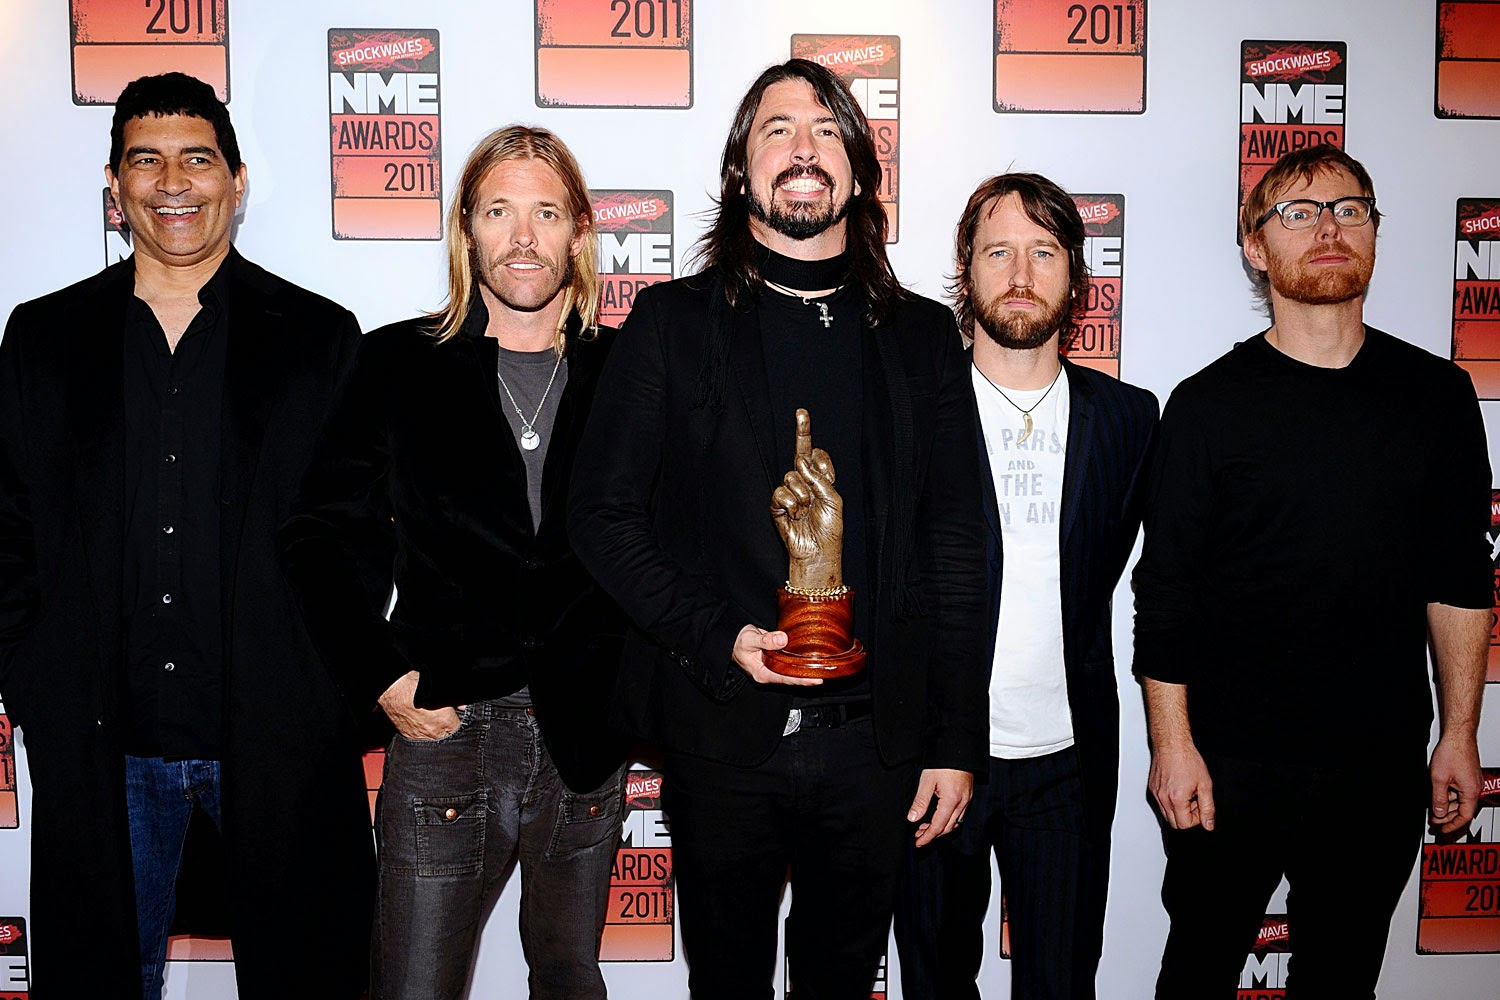 foo fighters award